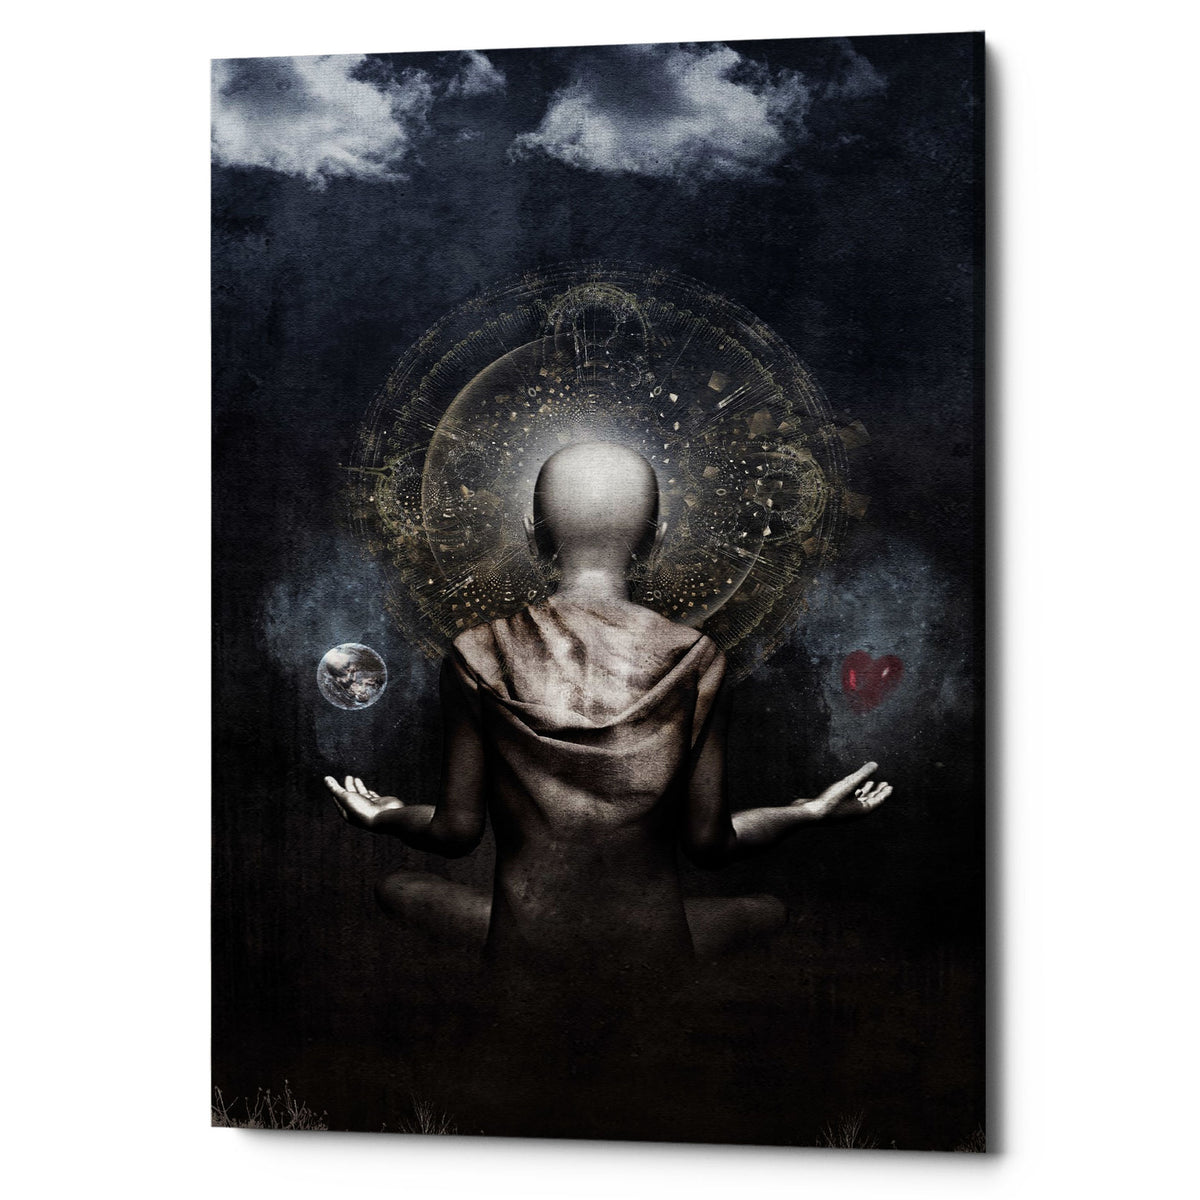 "Epic Graffiti ""The Projection"" by Cameron Gray, Giclee Canvas Wall Art"